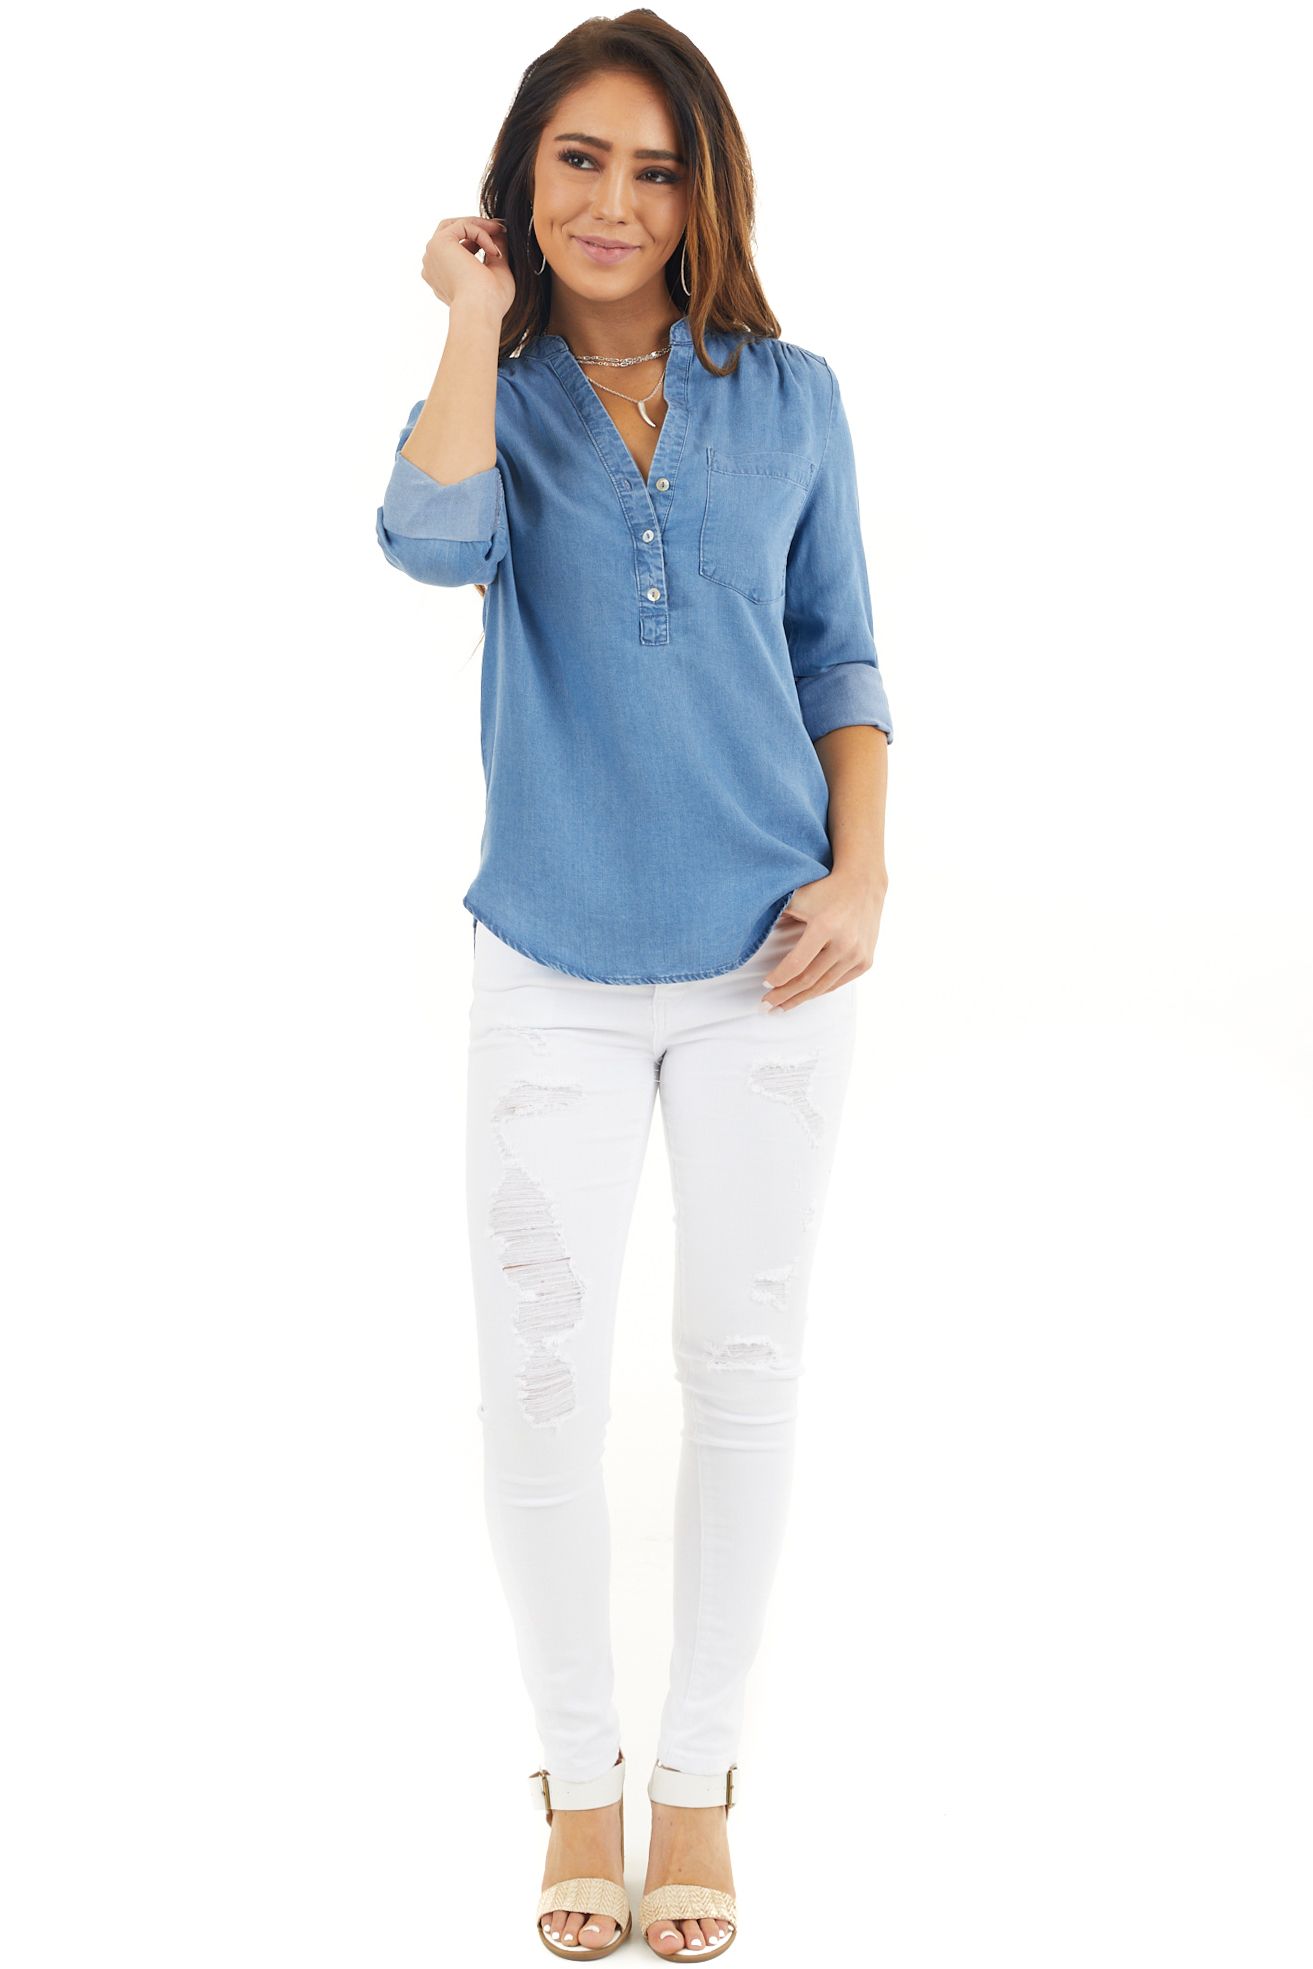 Blue Chambray Blouse with Chest Pocket and Gathered Details